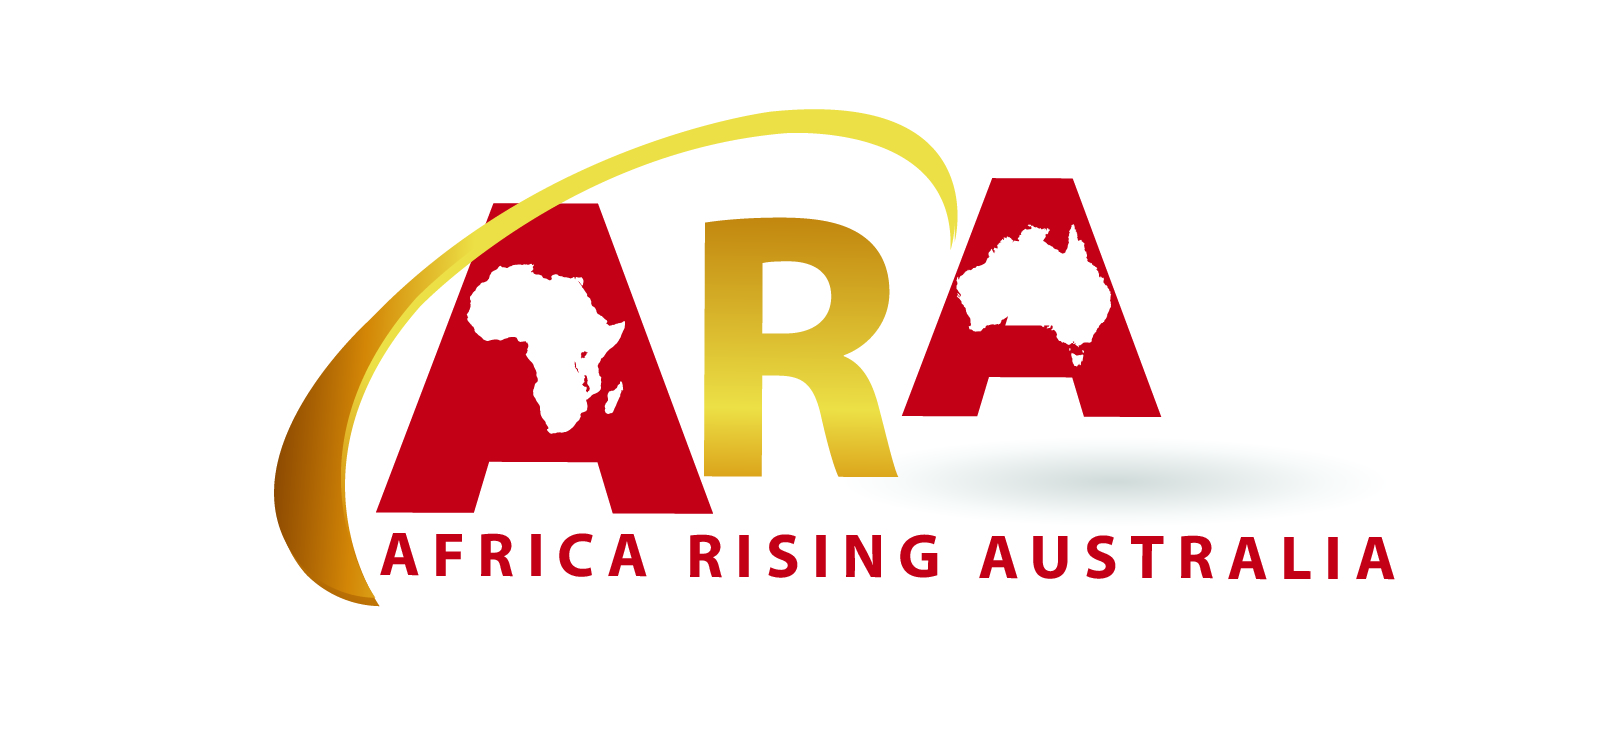 African Diaspora promoting Africa's business opportunities to